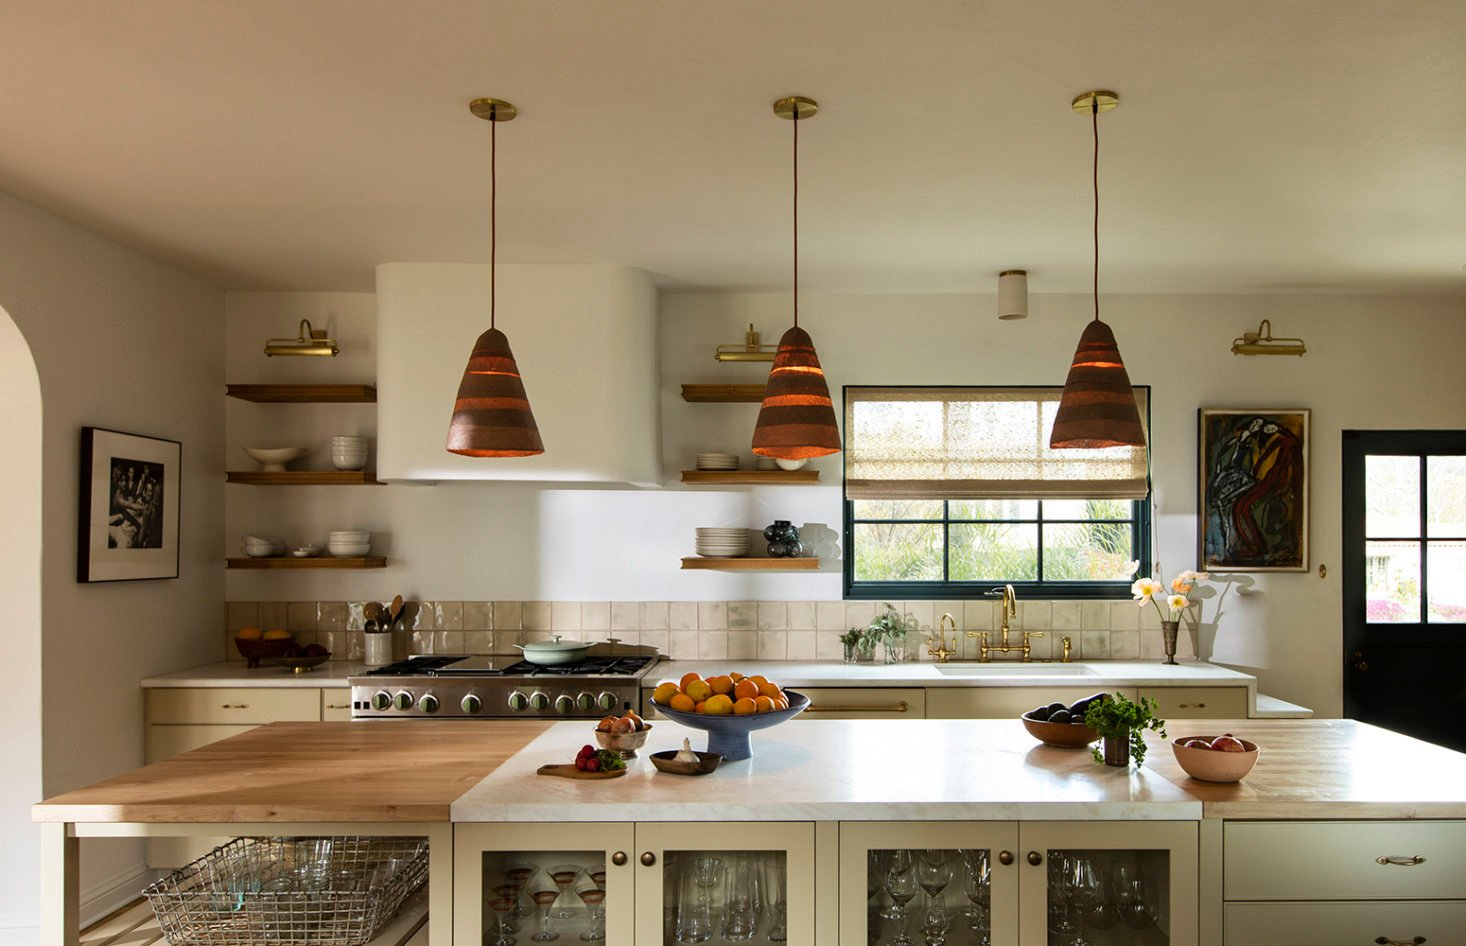 Ways To Make Your Kitchen More Green (And We Don't Mean The Color) - Bobby Berk